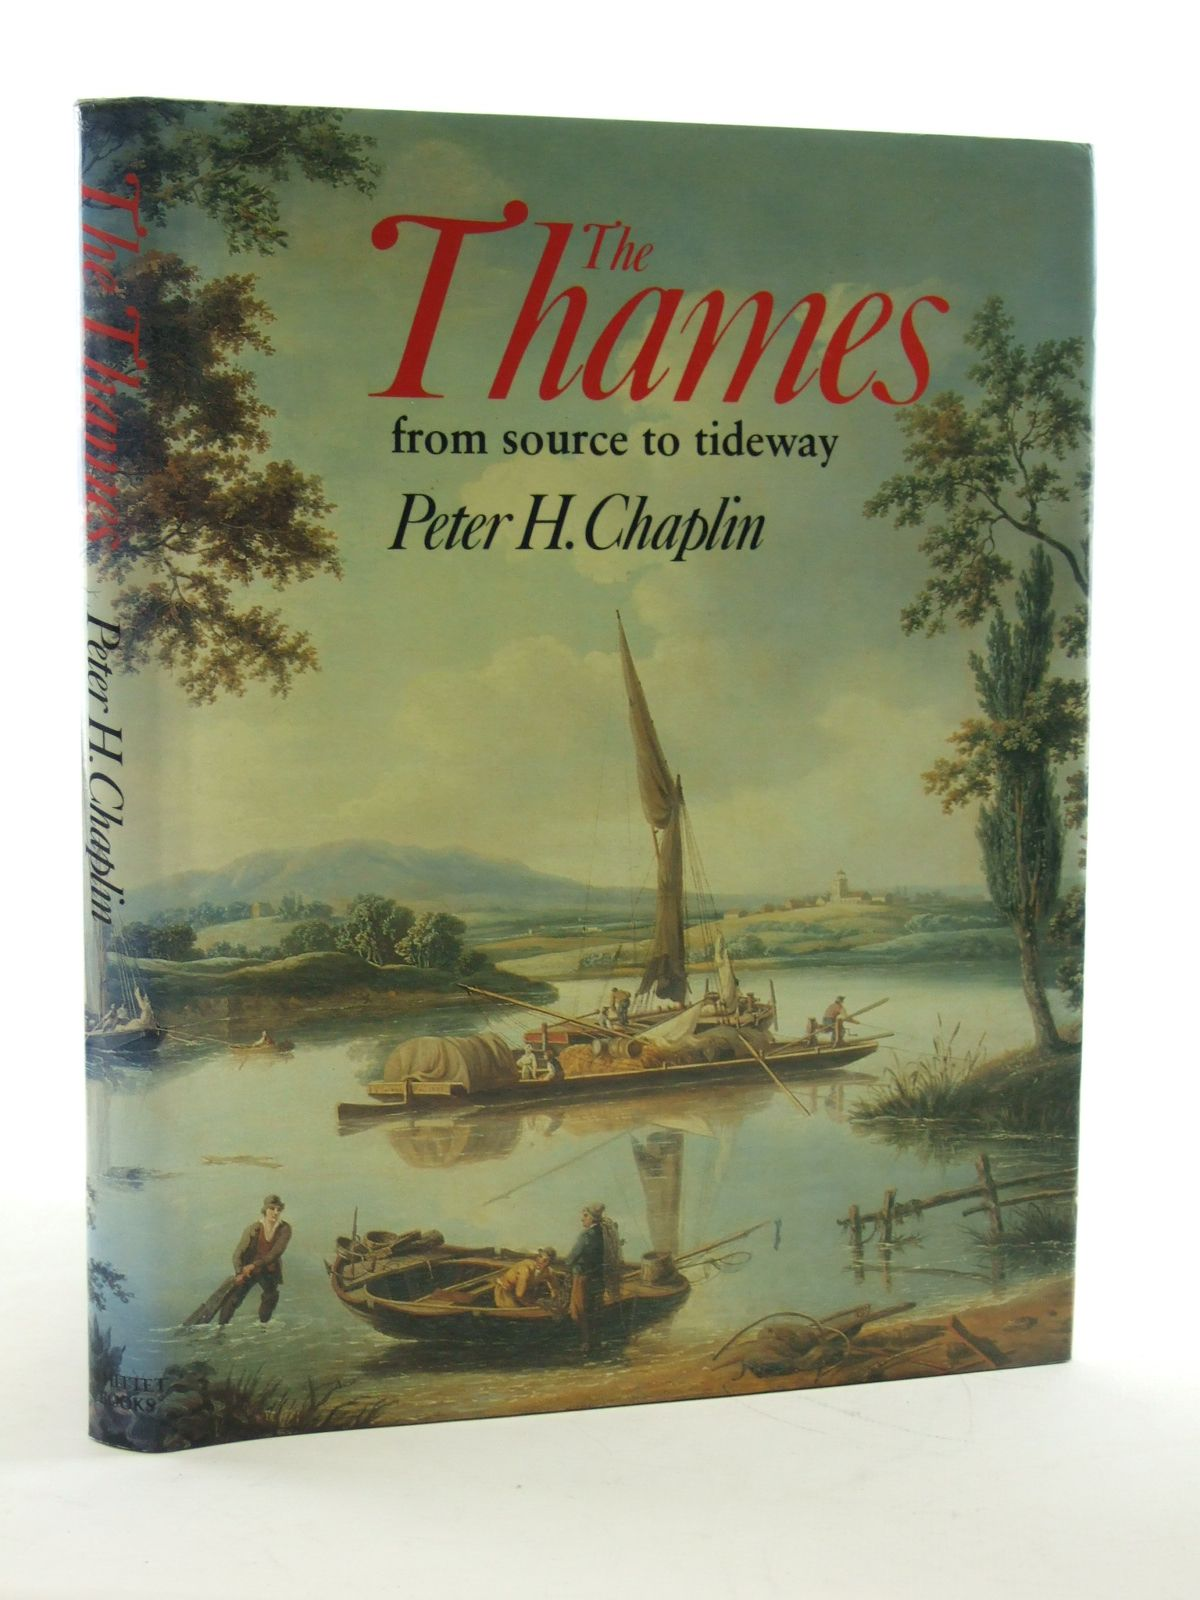 Photo of THE THAMES FROM SOURCE TO TIDEWAY written by Chaplin, Peter H. published by Whittet Books Ltd. (STOCK CODE: 1603369)  for sale by Stella & Rose's Books